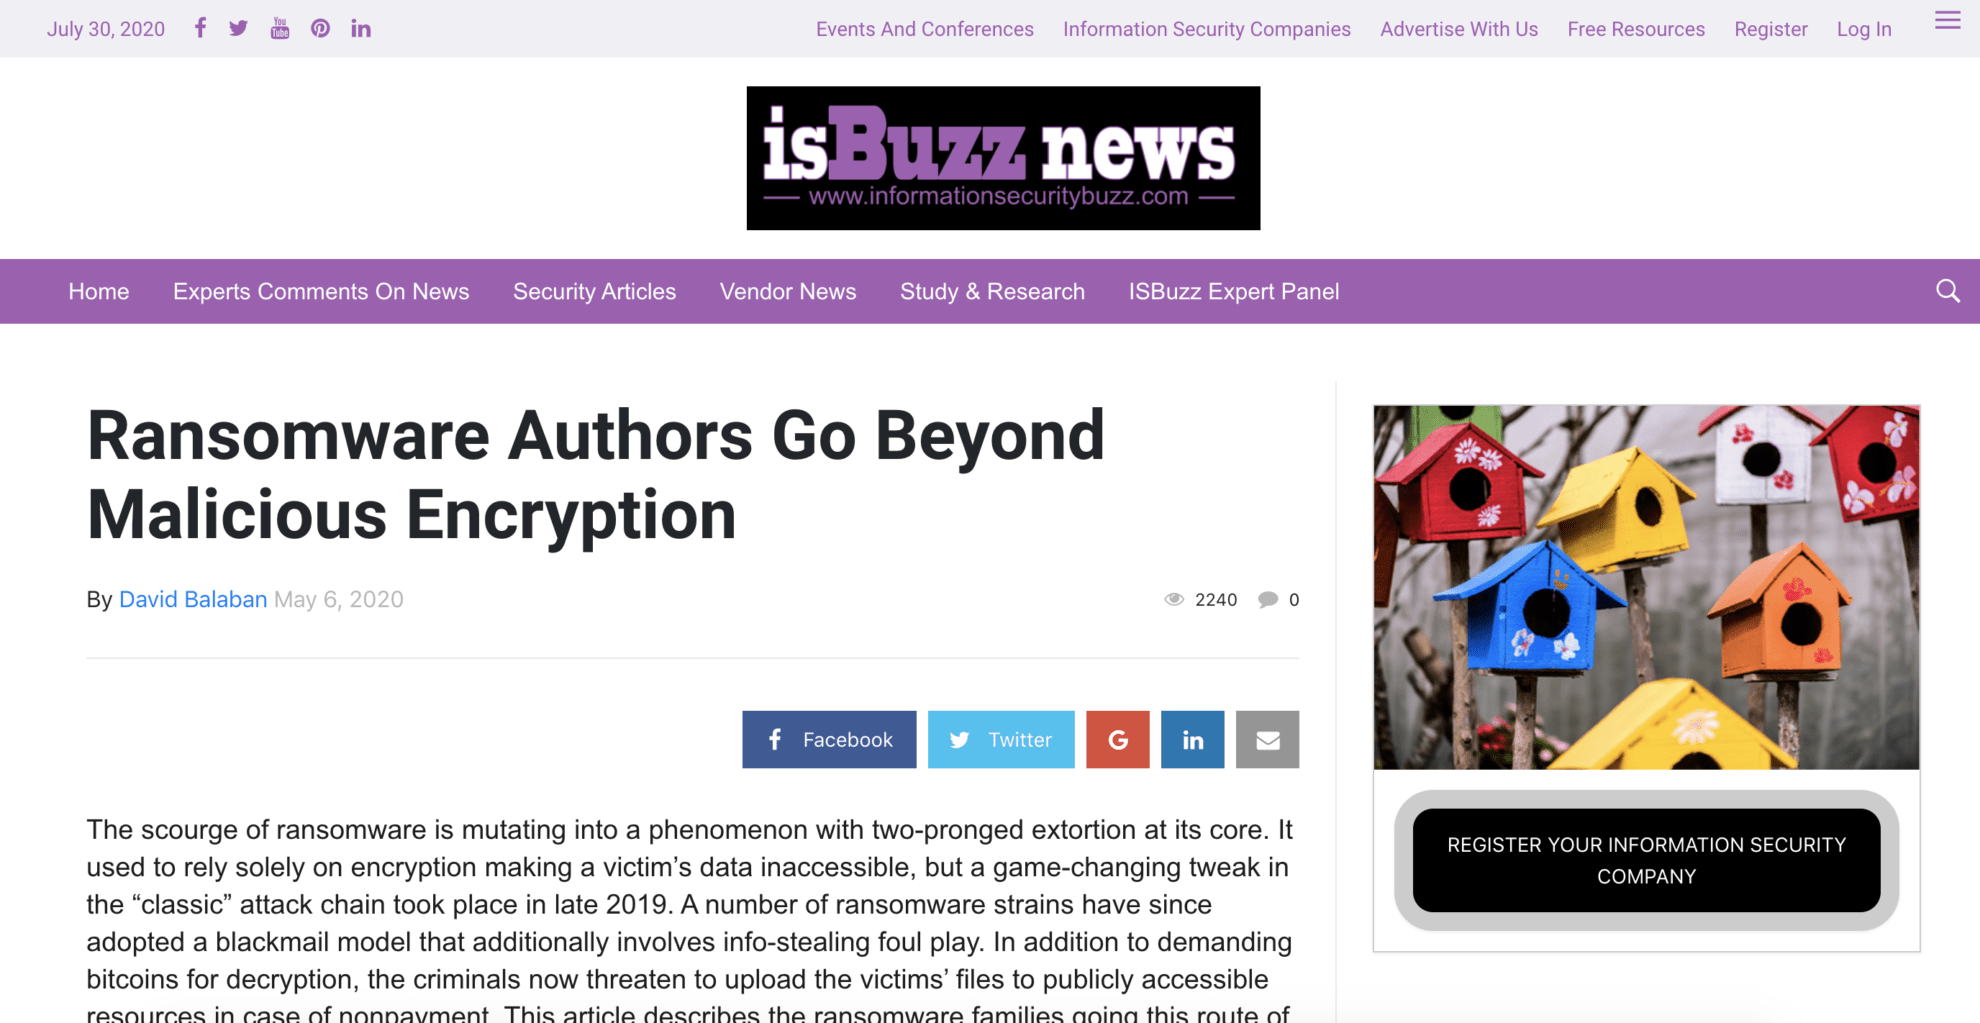 Ransomware Authors